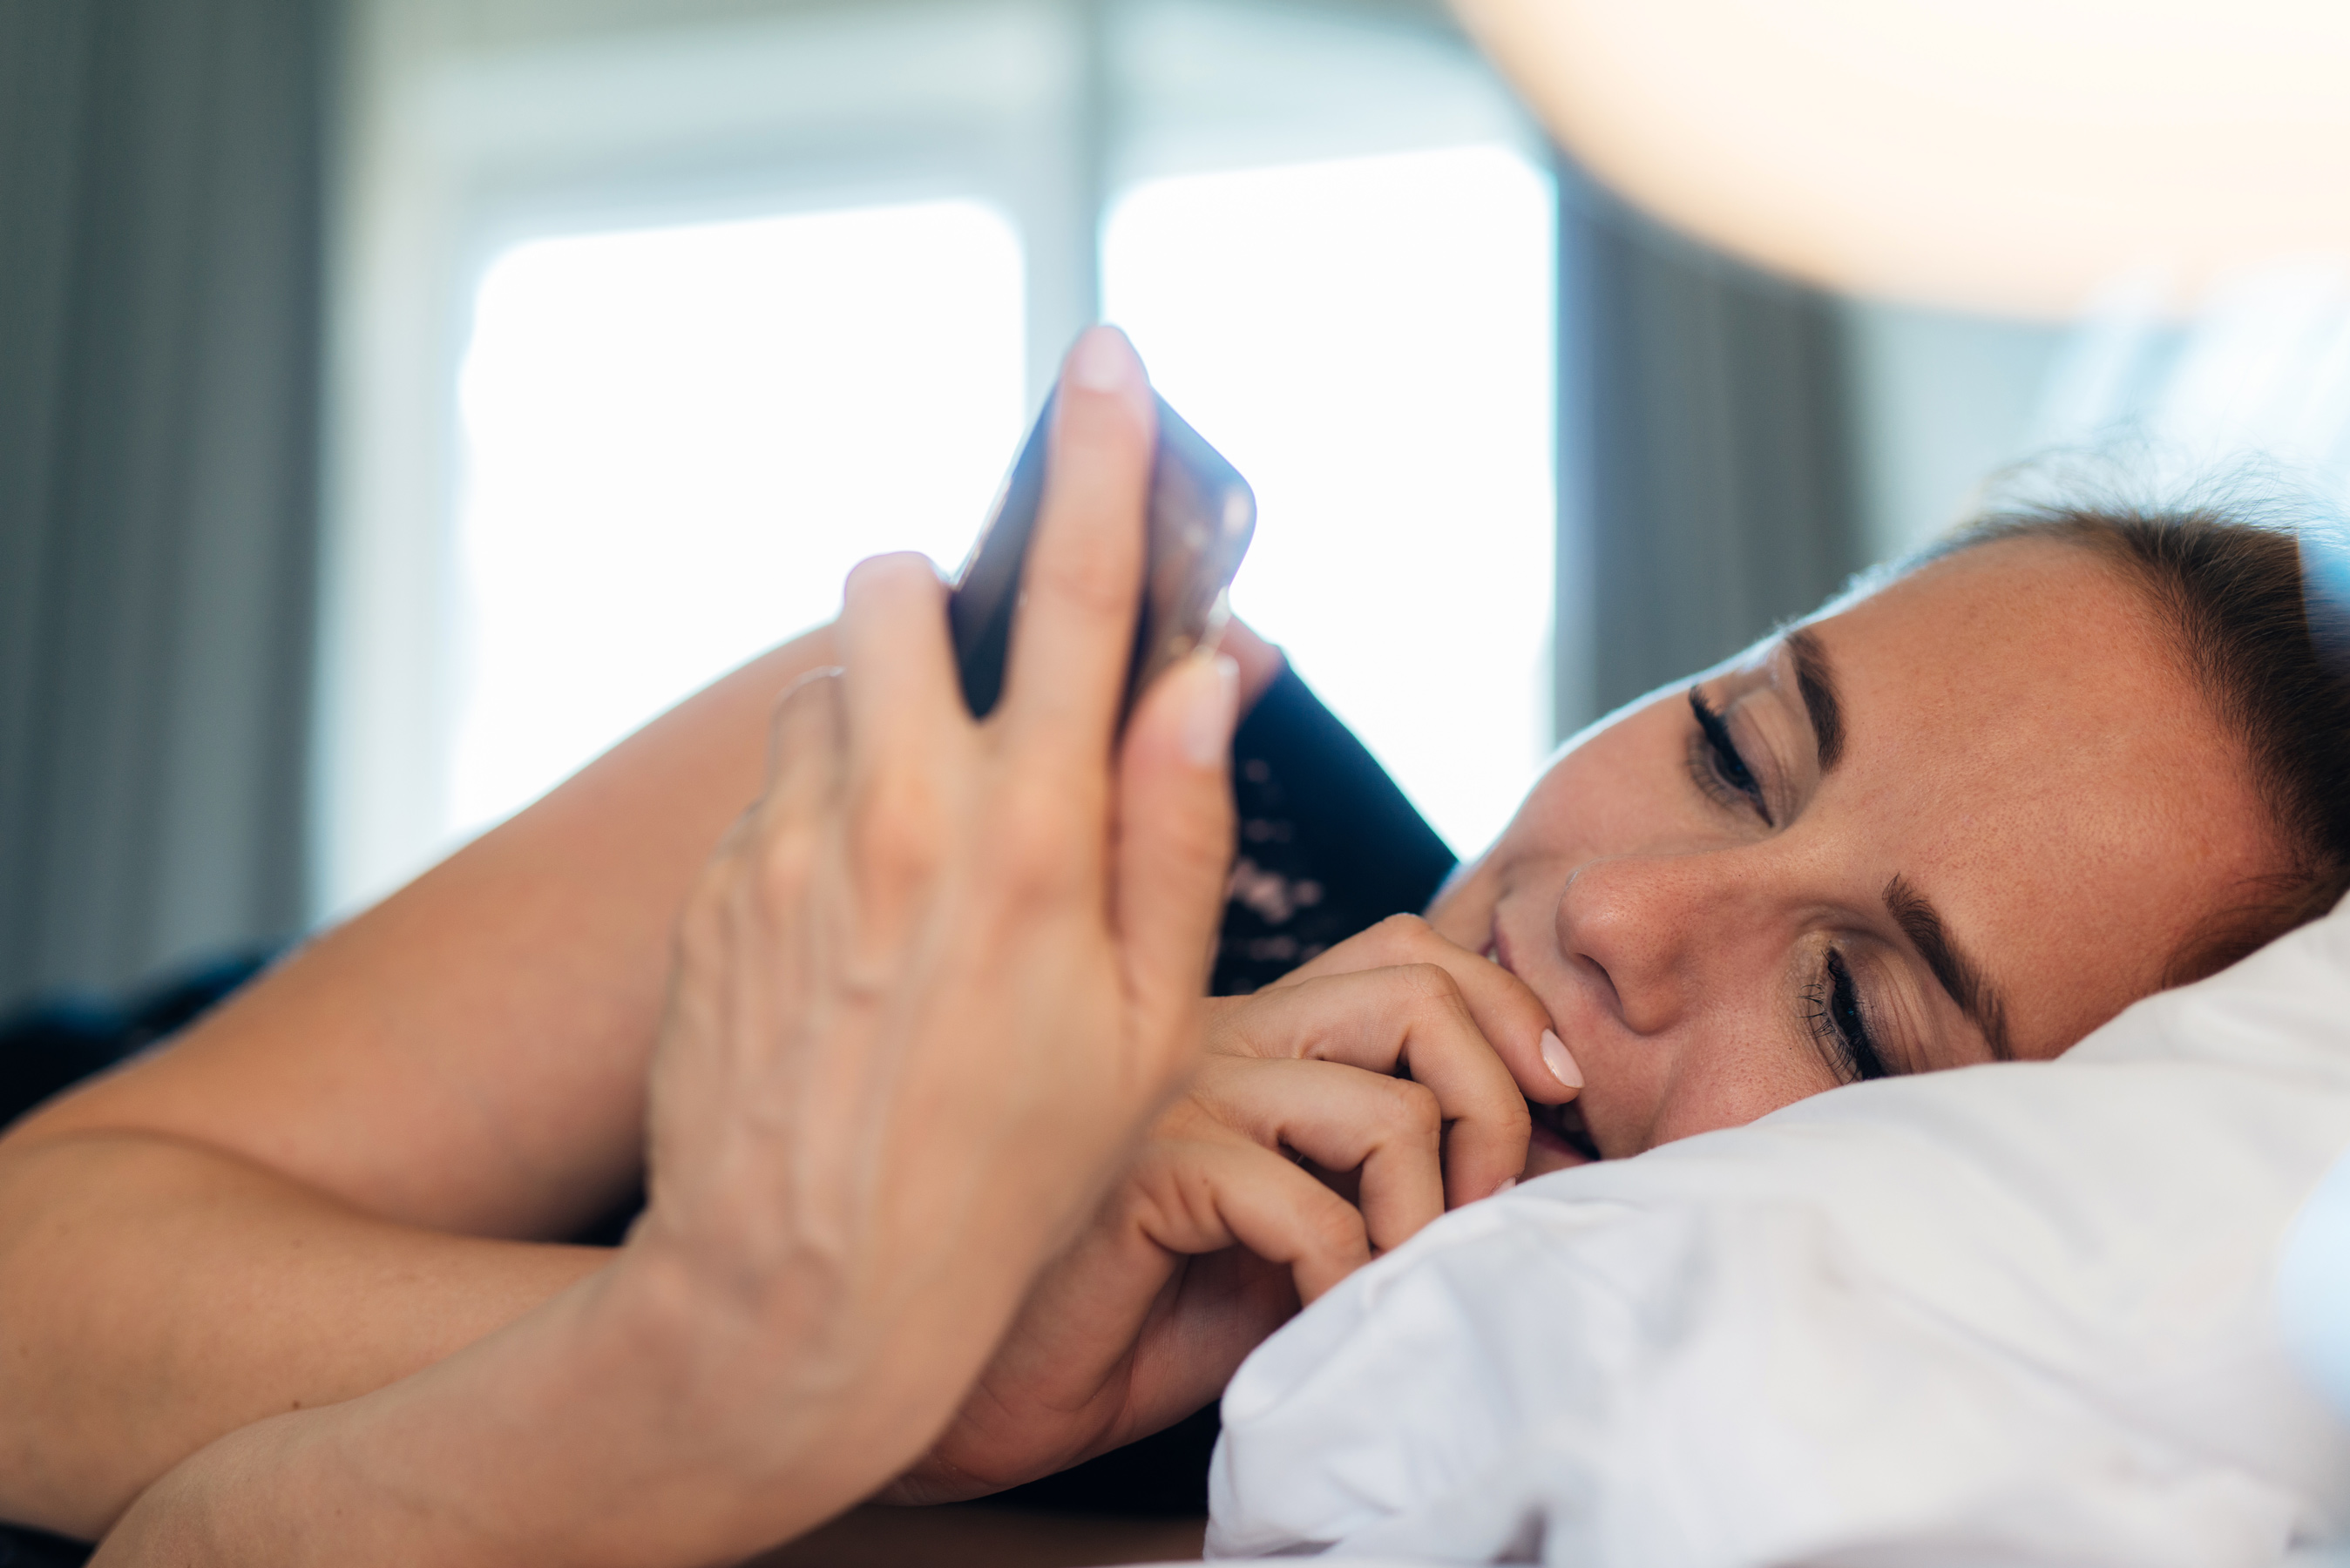 Can You Actually Use Your Phone As a Vibrator?